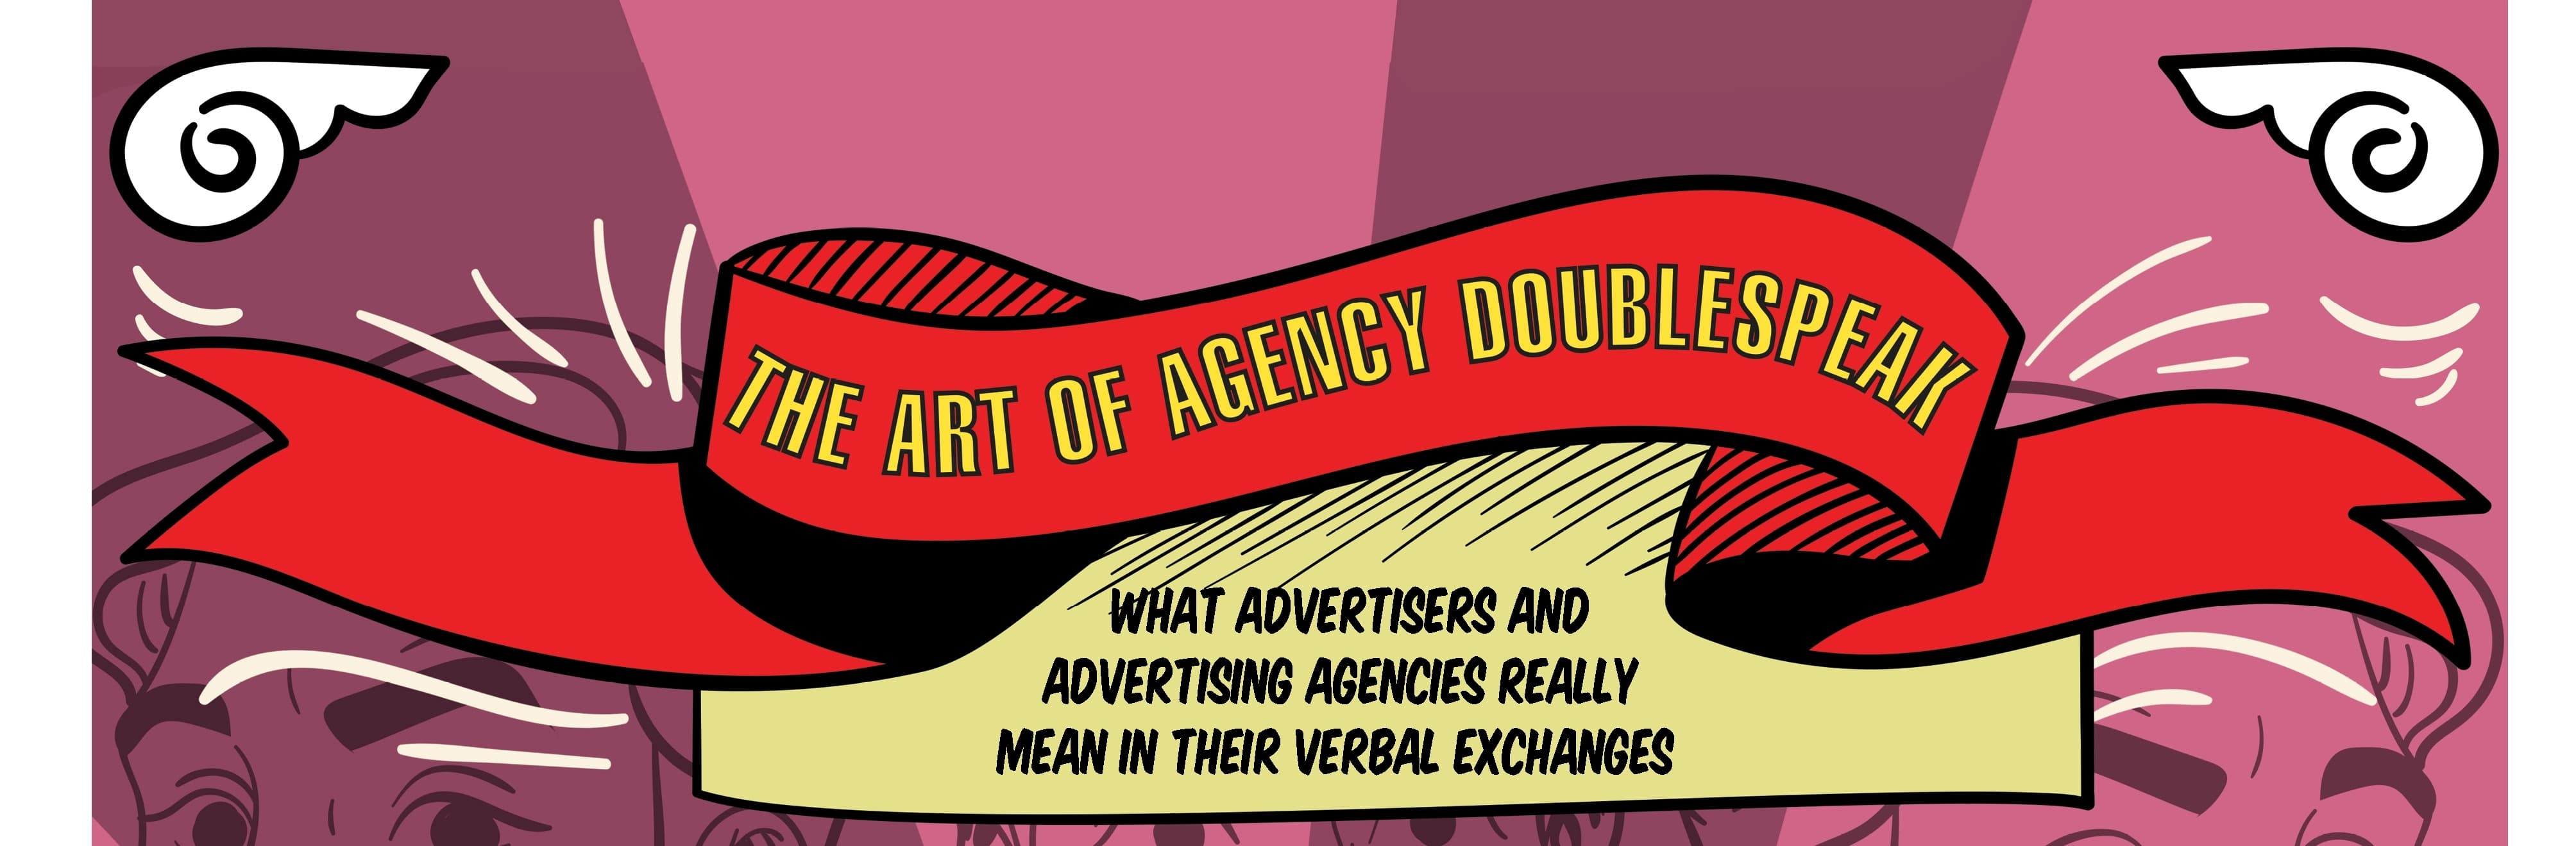 THE ART OF AGENCY DOUBLESPEAK